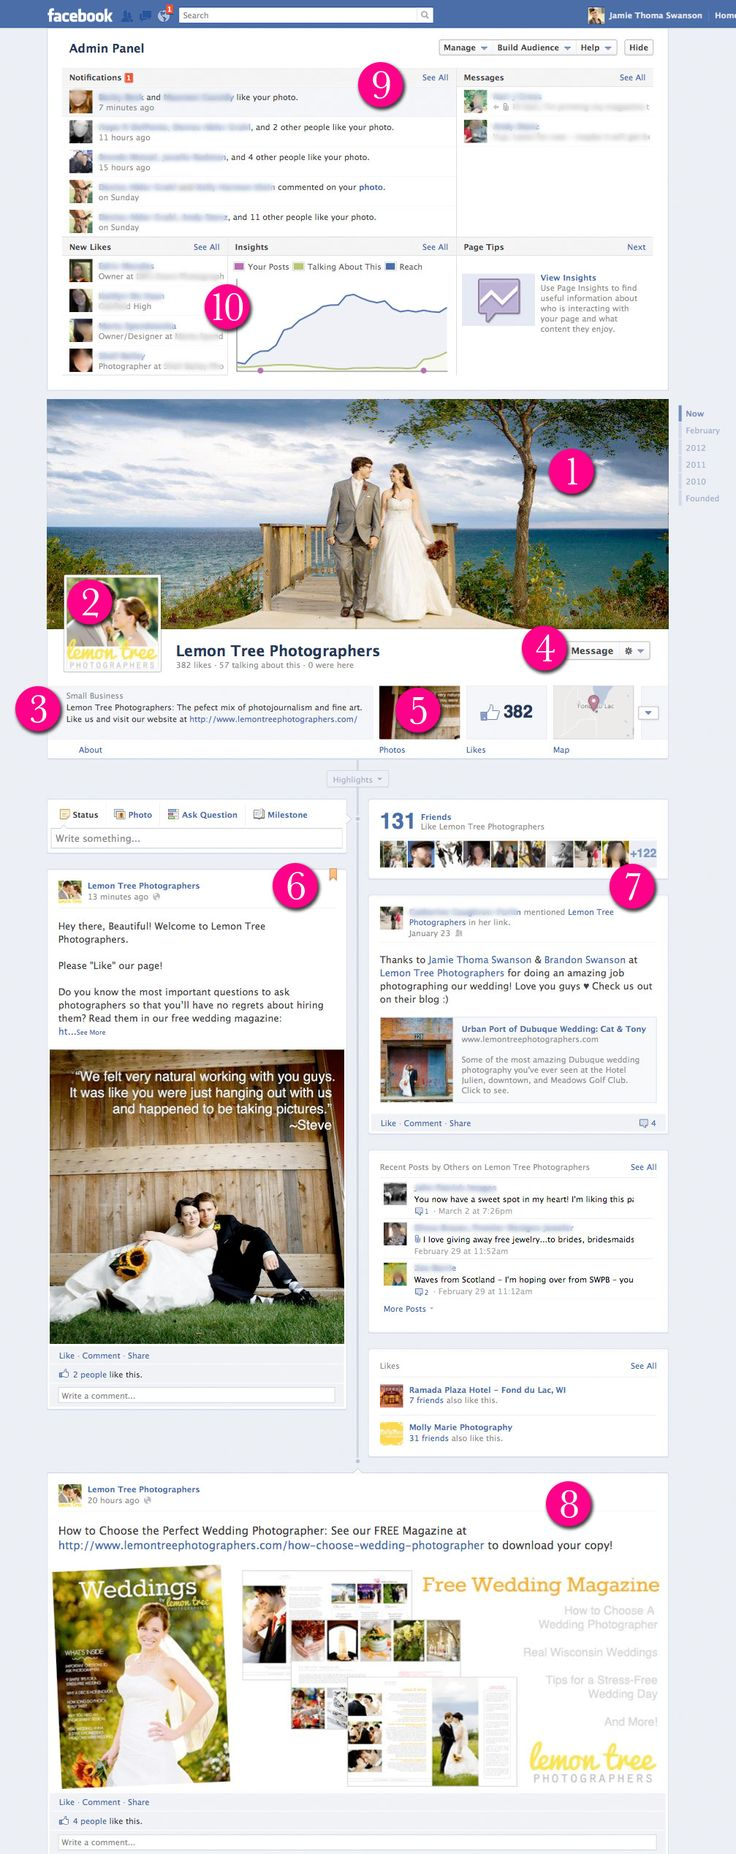 Everything you need to know about Facebook Timelines for Pages (and why you should love this as a photographer)!: Business Owners, Photography Business Marketing, Photography Marketing Ideas, Facebook Photographers Pages, Fb Timeline, Facebook For Photographers, Facebook Timeline Everything, Facebook Photography Pages, Facebook Timeline Smal